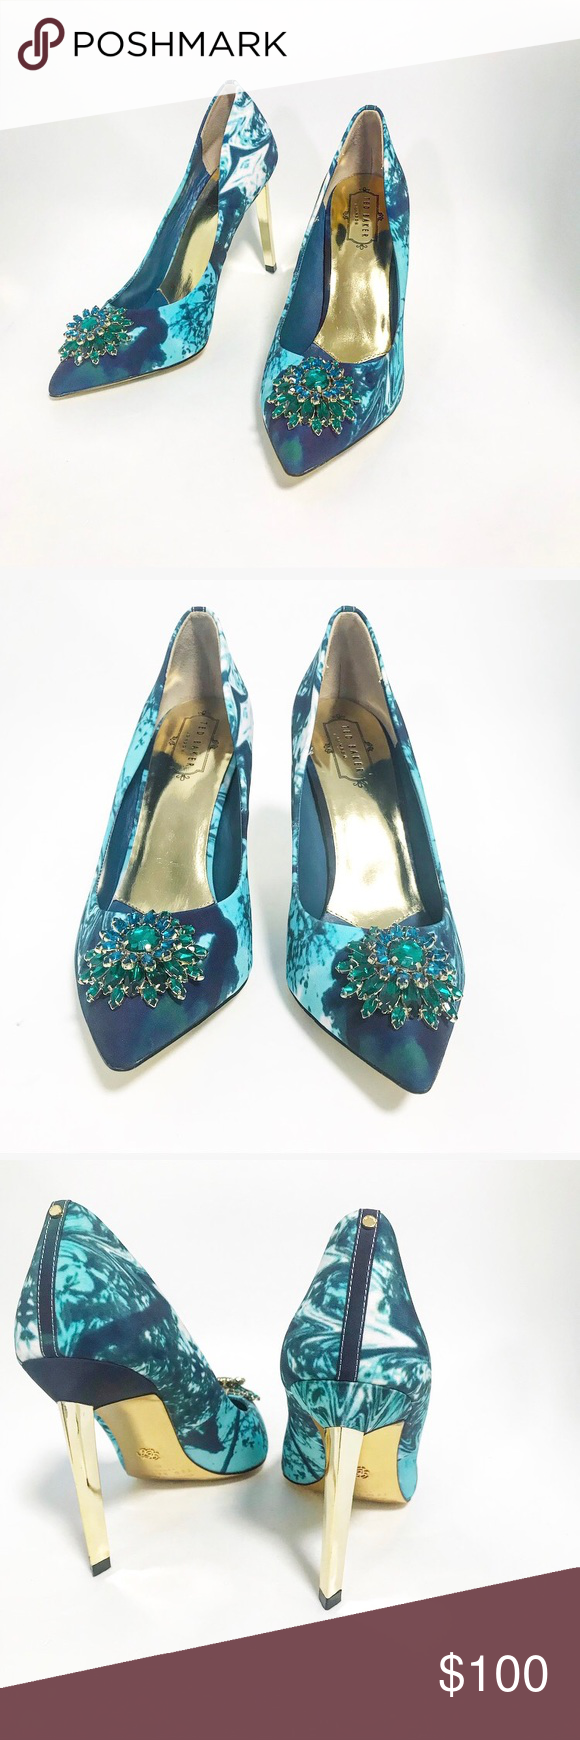 a810c445f5a2b6 Ted Baker. Bejeweled brooch heels. Aqua blue and green. Gold bottoms. Brand  new! no box or bag. Abstract ocean print size 40 10 Ted Baker London Shoes  Heels